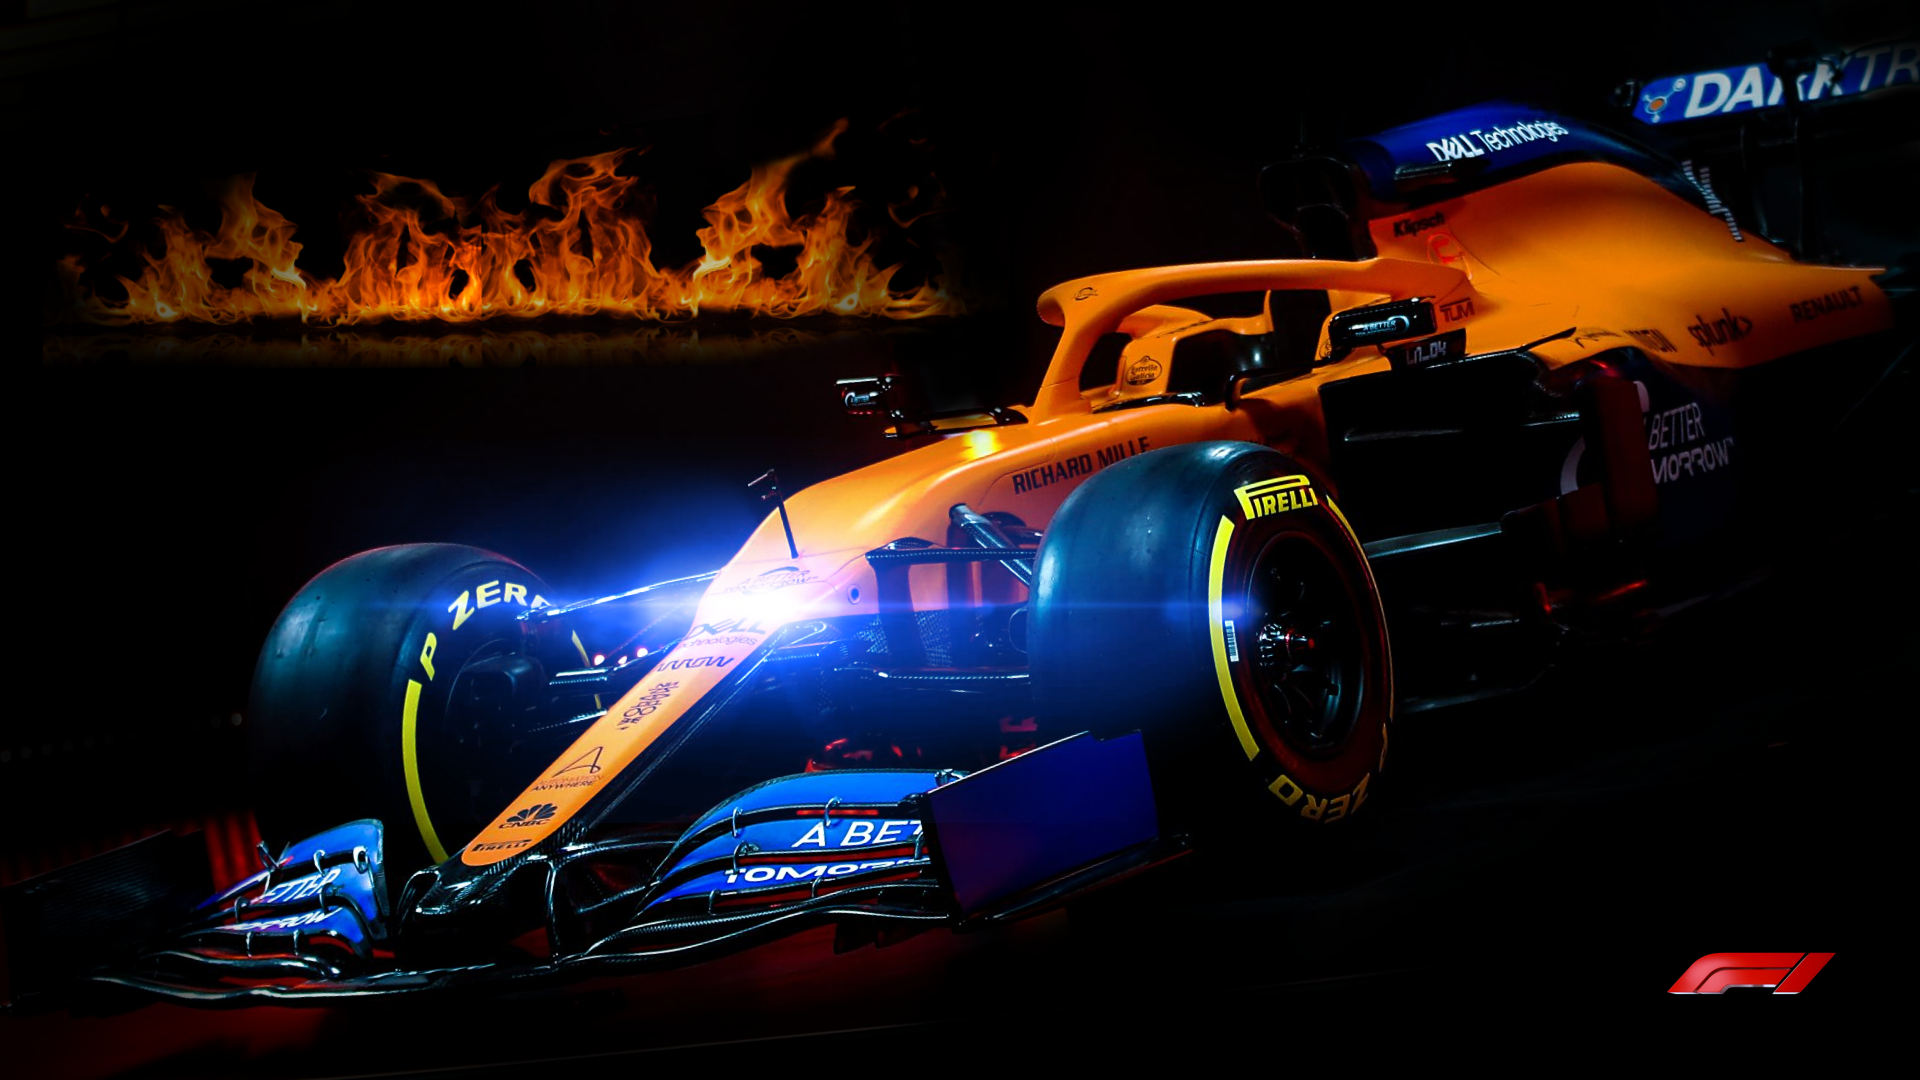 F1 2020 My Driver Career - Sivu 3 2020-mclaren-f1-car-mcl35